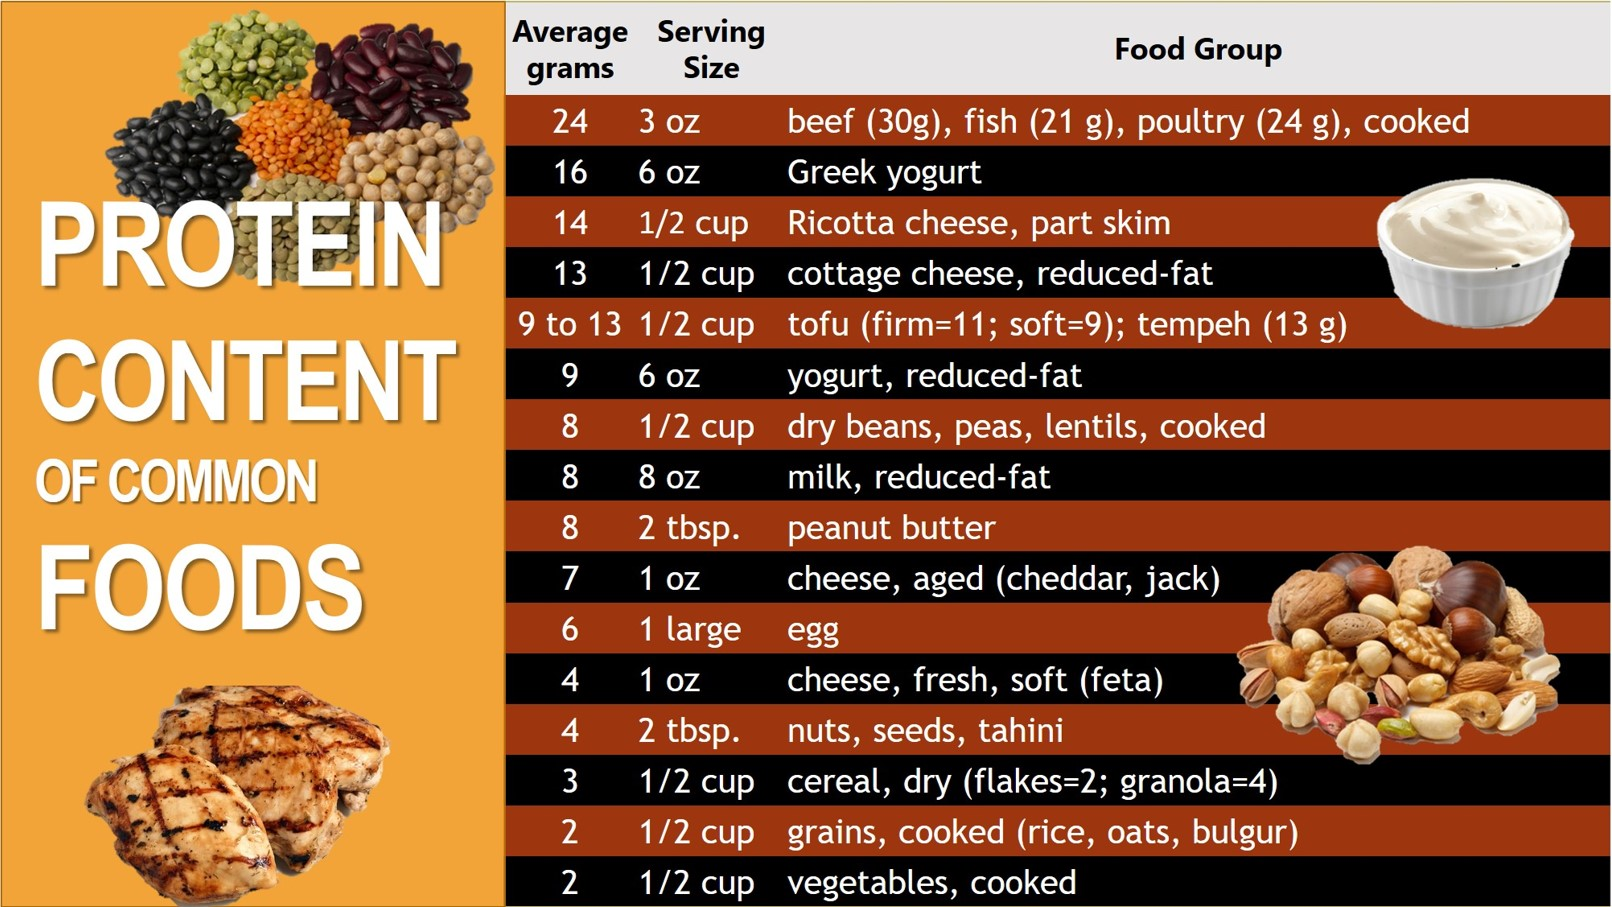 Protein Content Of Common Foods